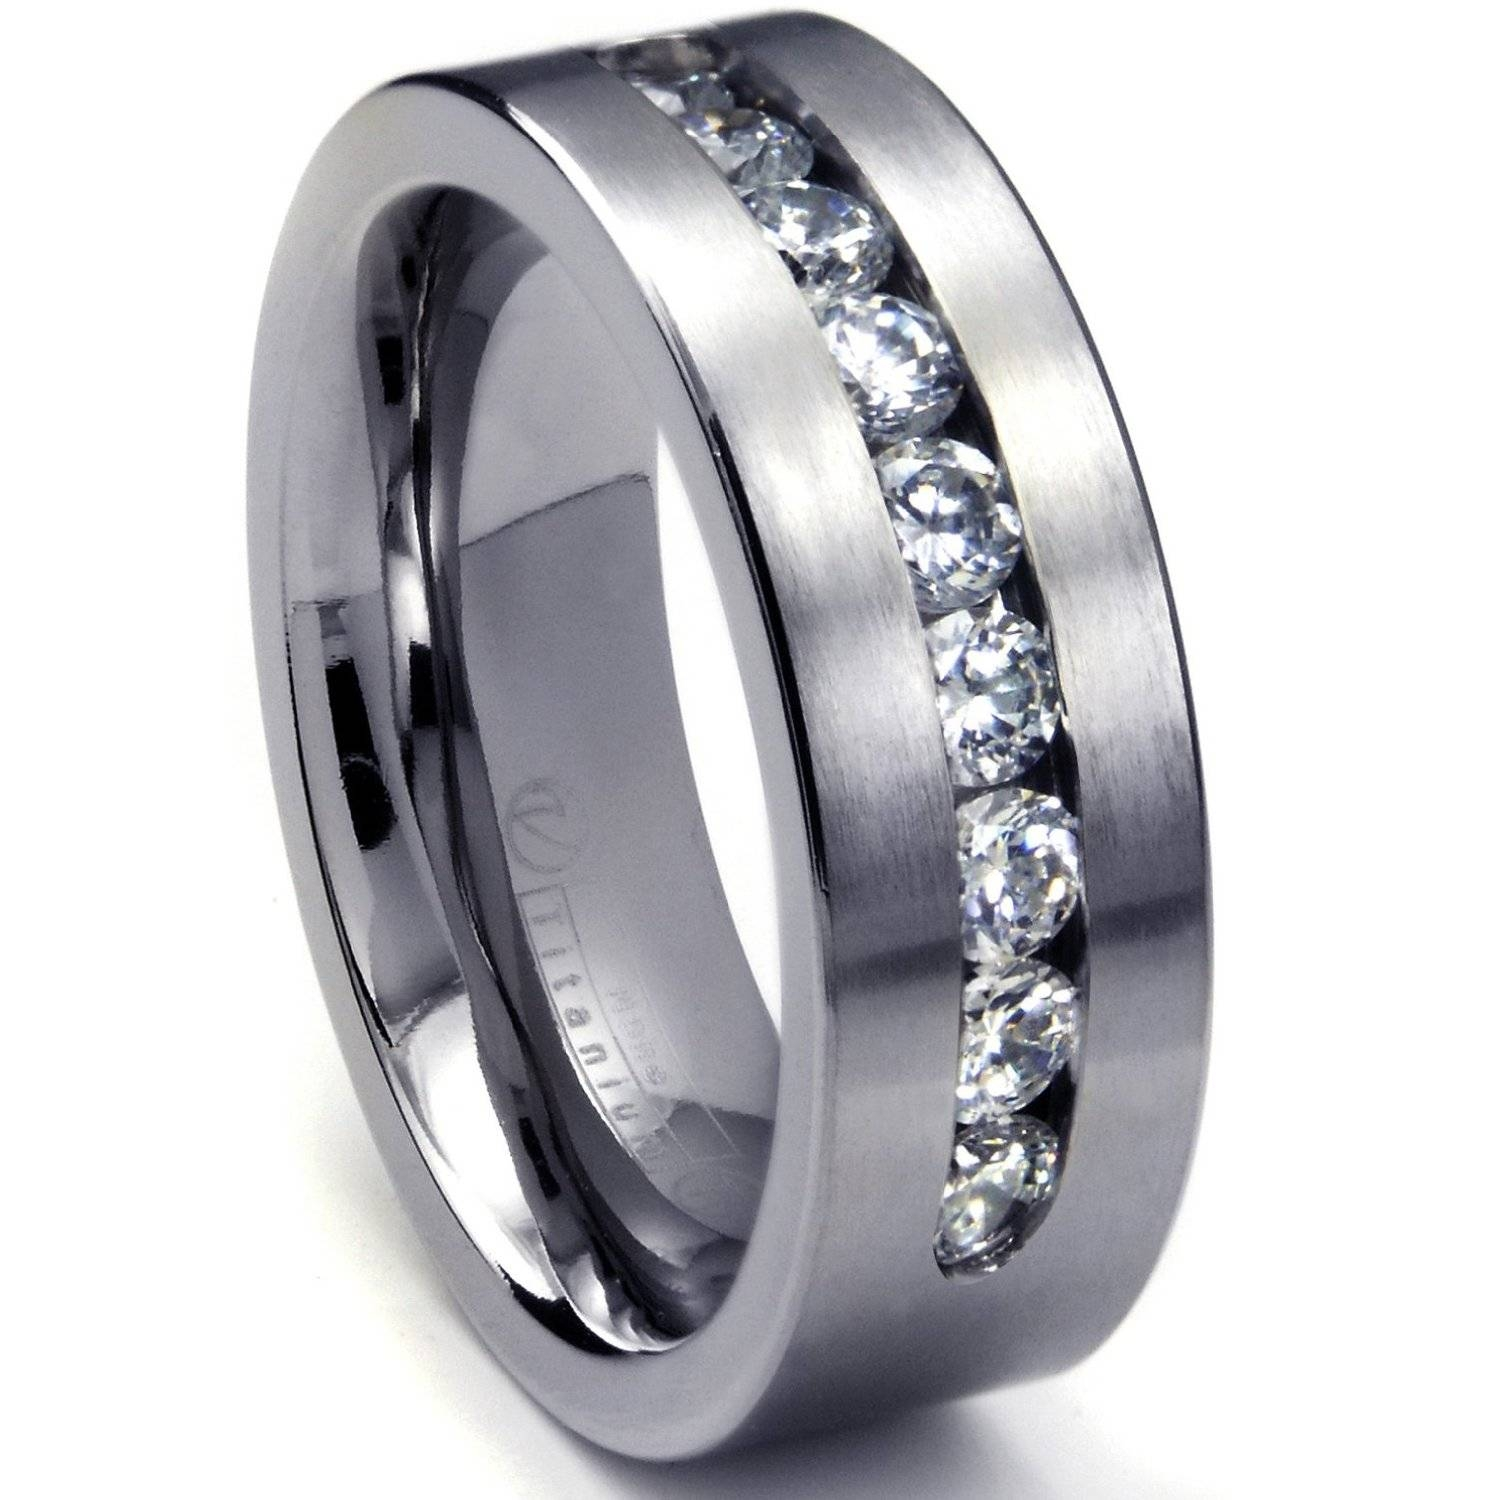 Large Wedding Rings Tags : Wedding Diamond Rings For Women Mens With Titanium Wedding Bands For Him (View 13 of 15)